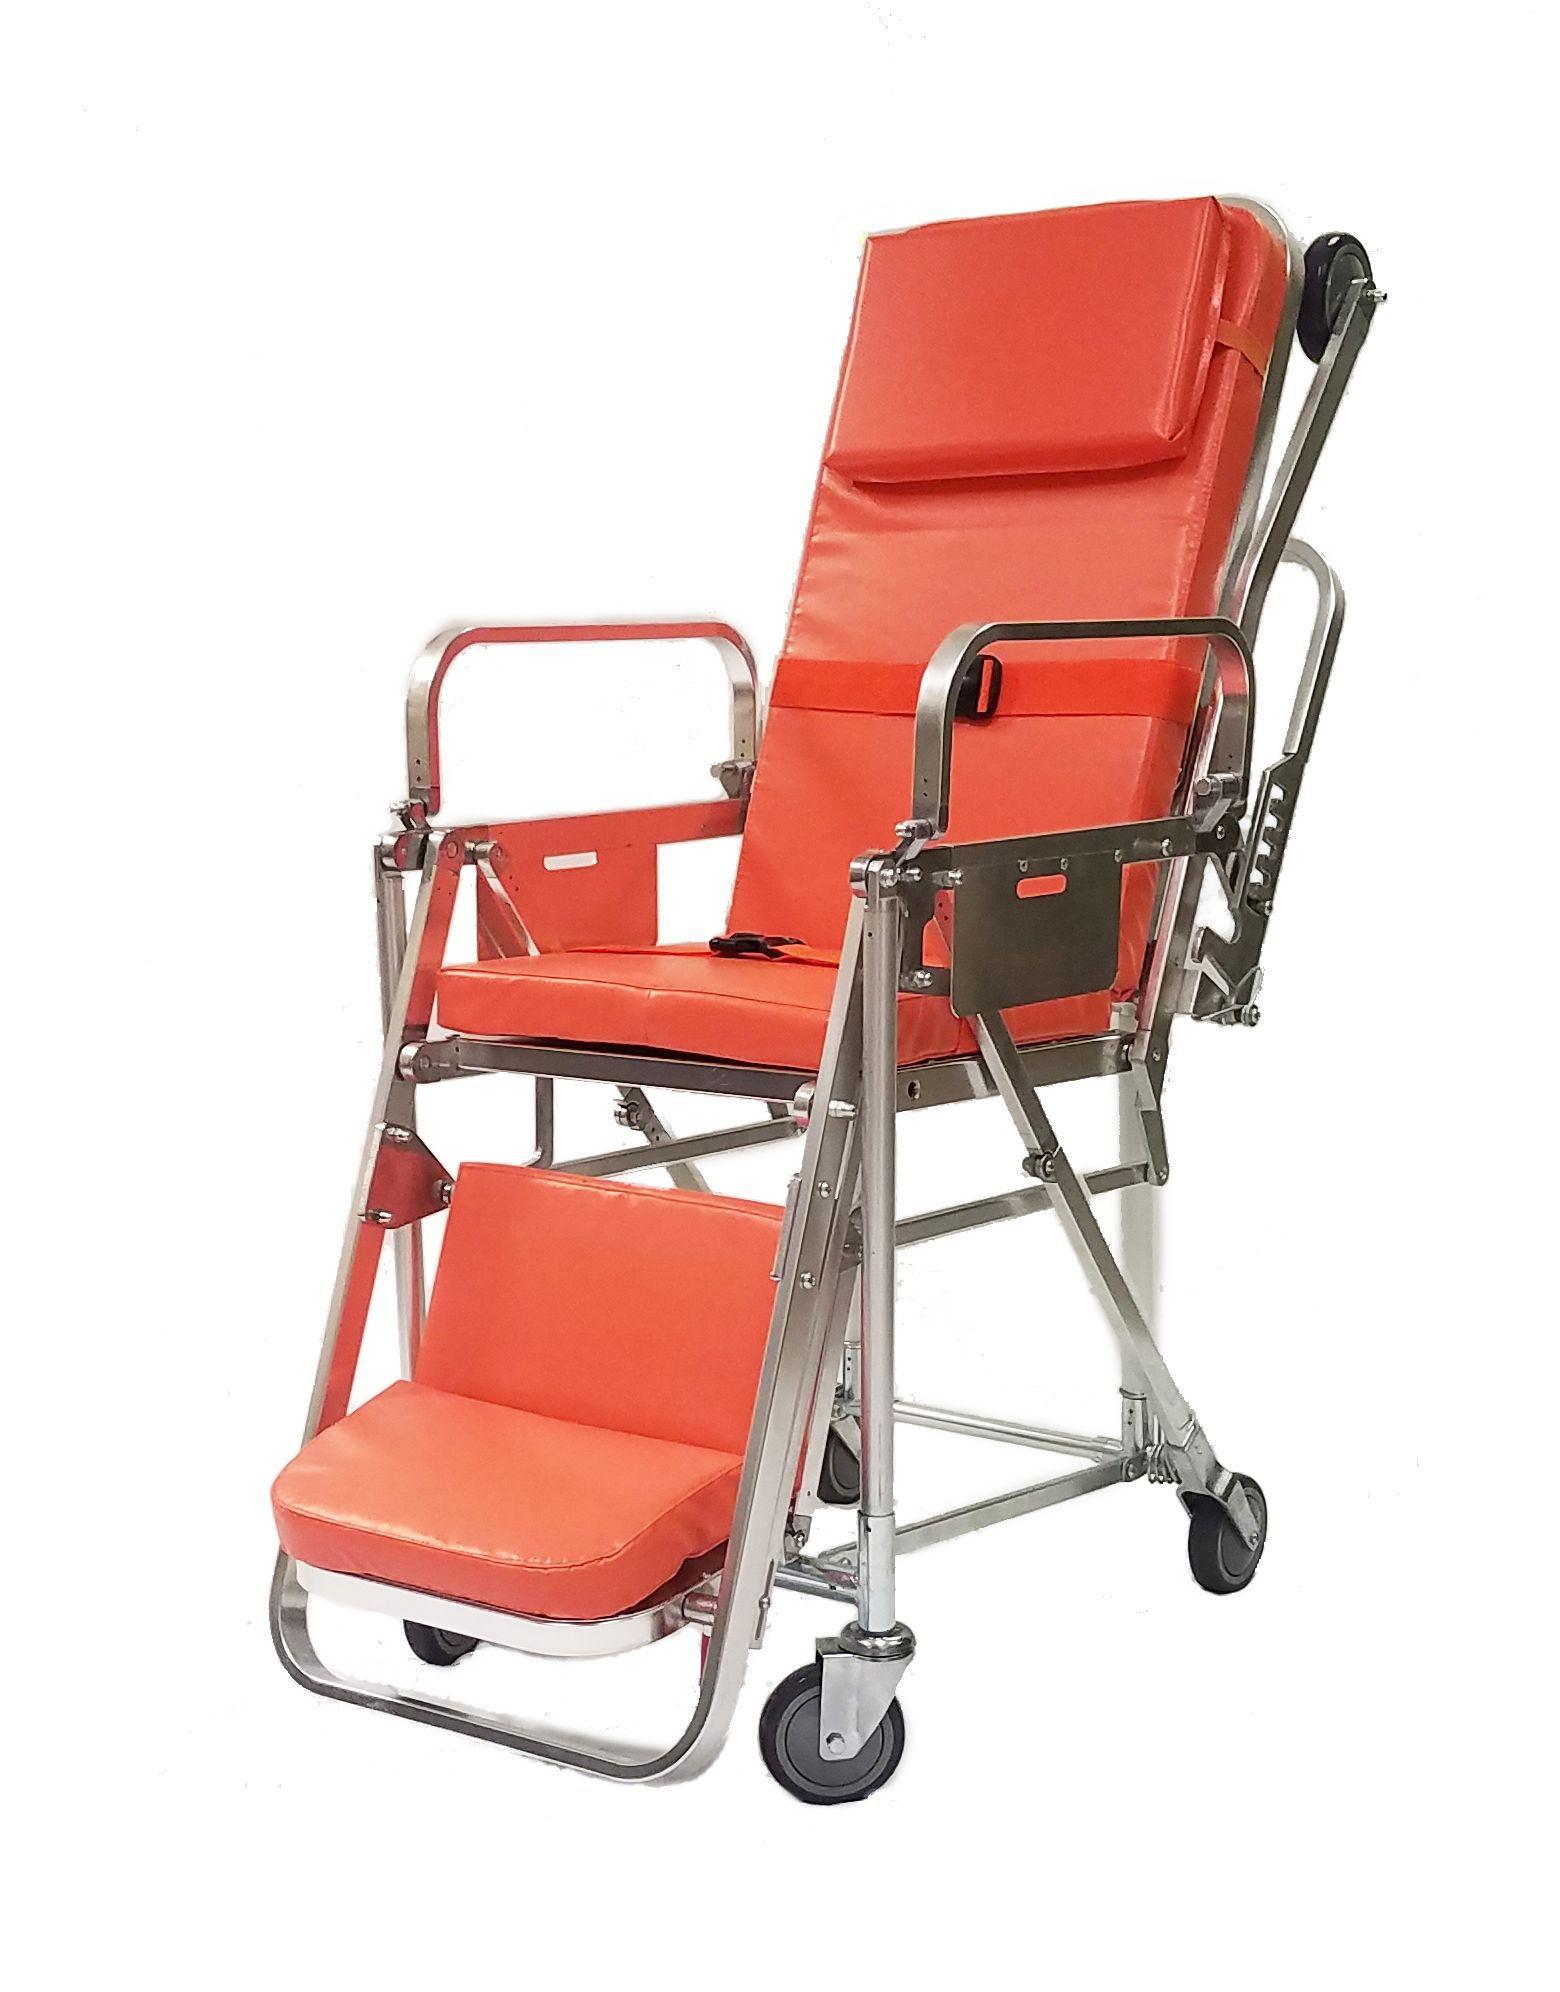 Folding Lightweight Ambulance Stretcher-Chair